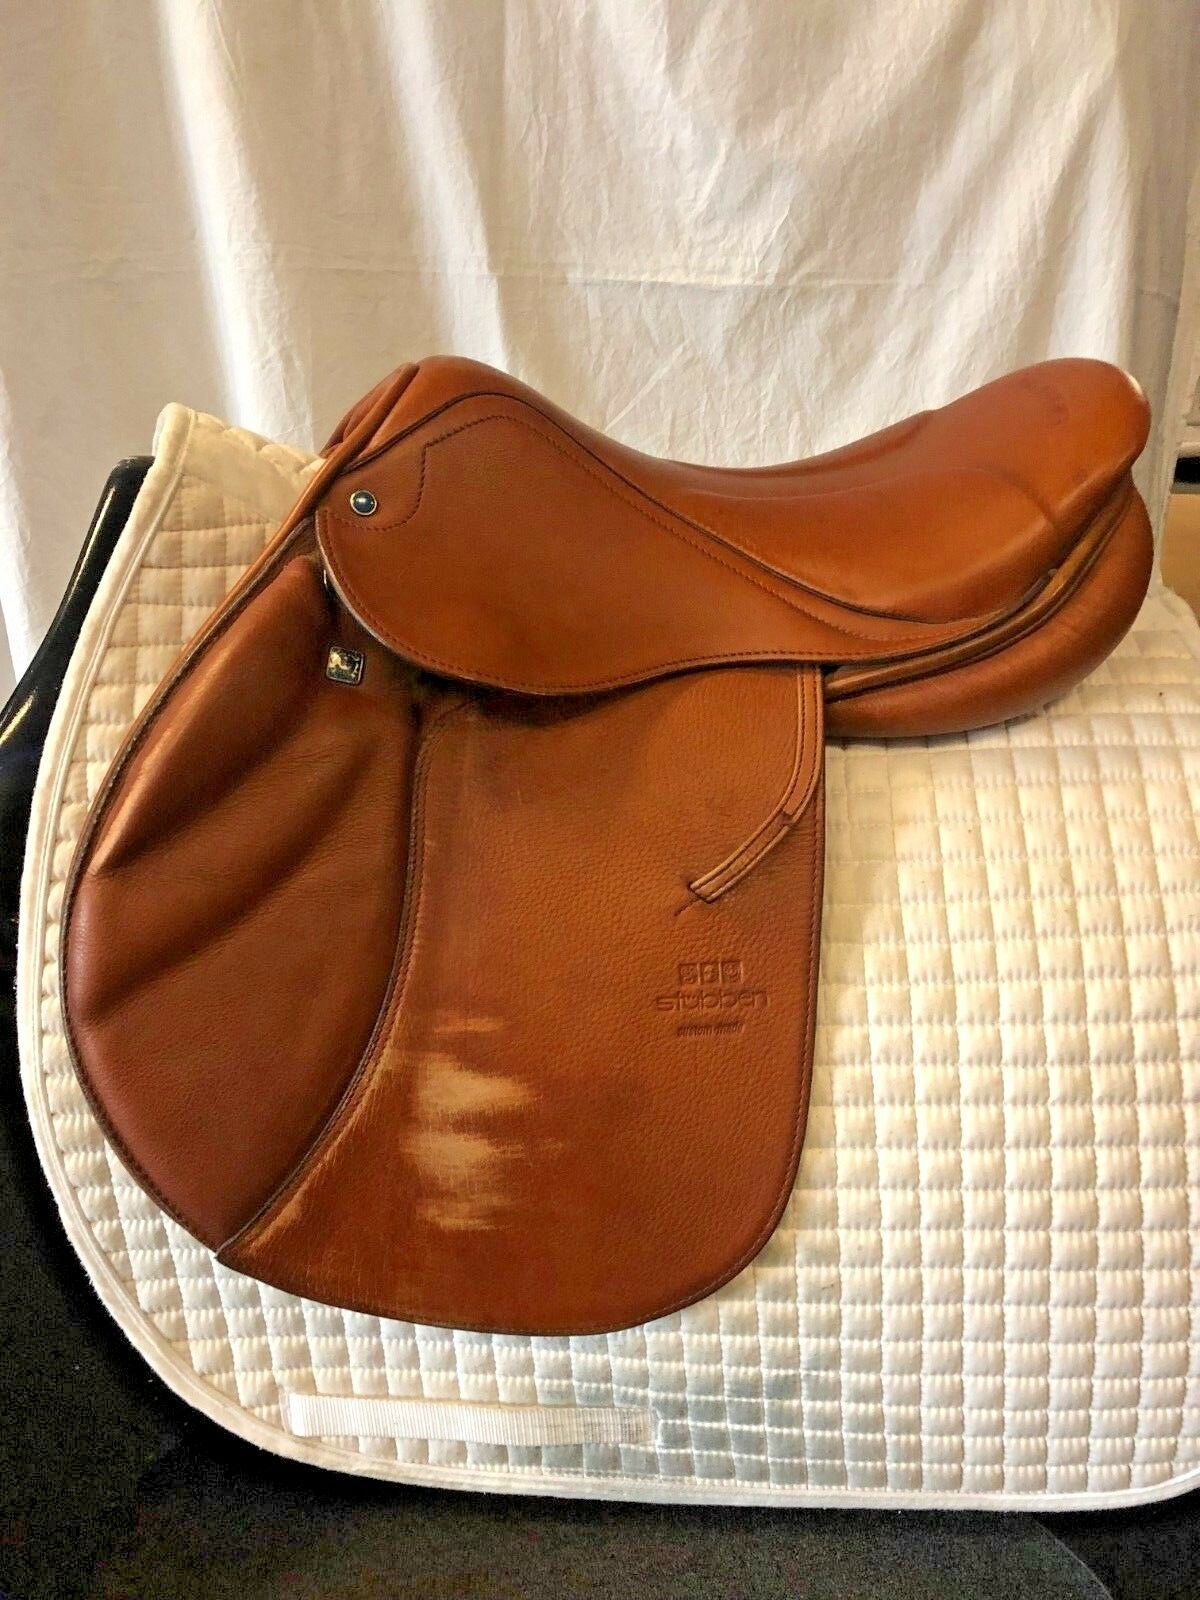 Used Stubben Zaria Deluxe with Biomex Jumping Saddle - Braun Größe 16.5'' - Braun - 82586a